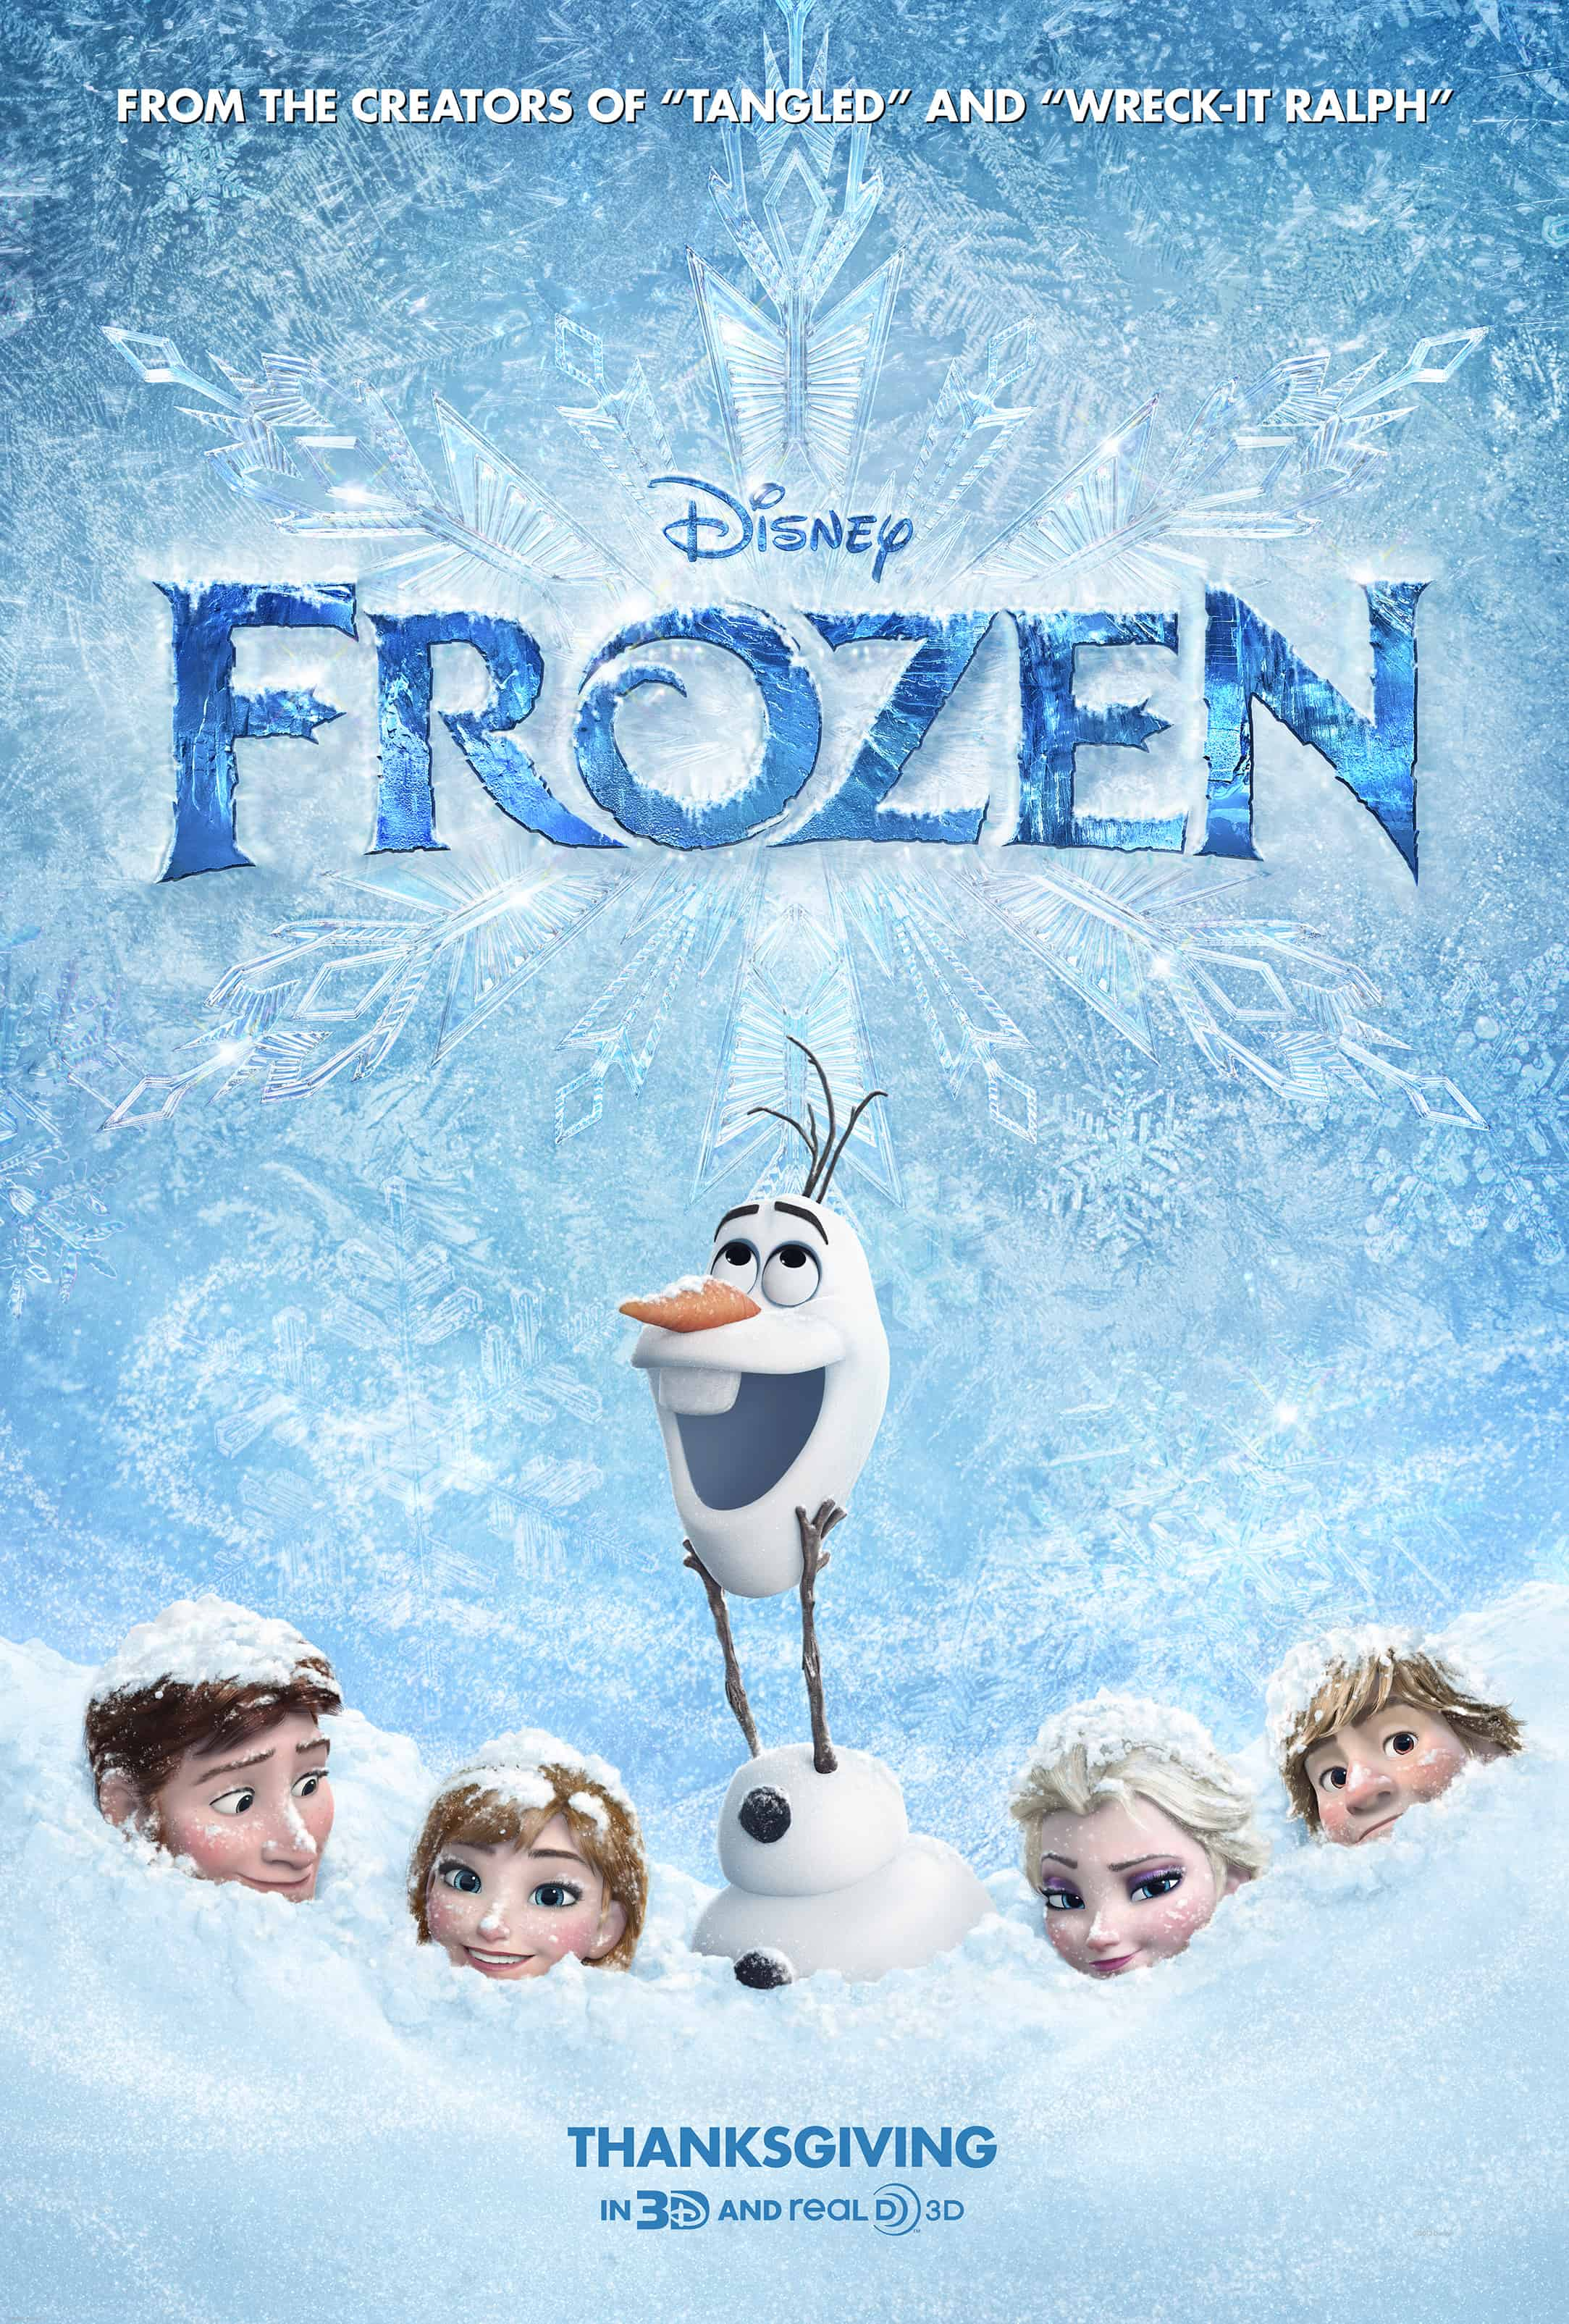 Are You Excited For Frozen? Frozen Is Disneyu0027s All New Animated Movie In  Theaters This Thanksgiving! Frozen Features An Amazing Cast Of Characters:  Elsa, ...